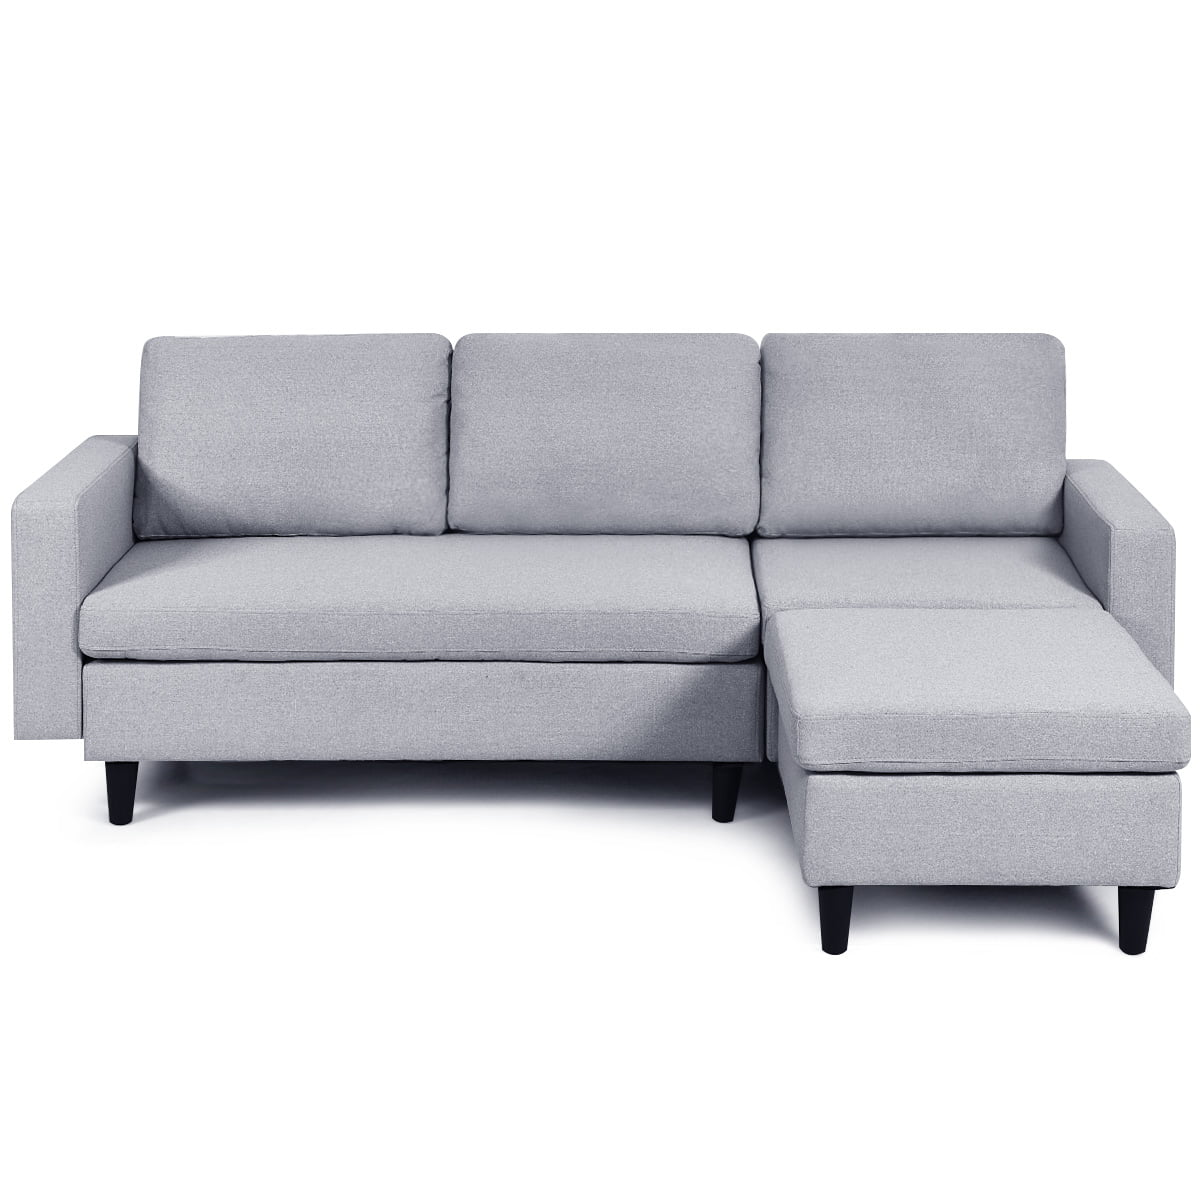 costway convertible sectional sofa couch l shaped couch massage back cushion gray